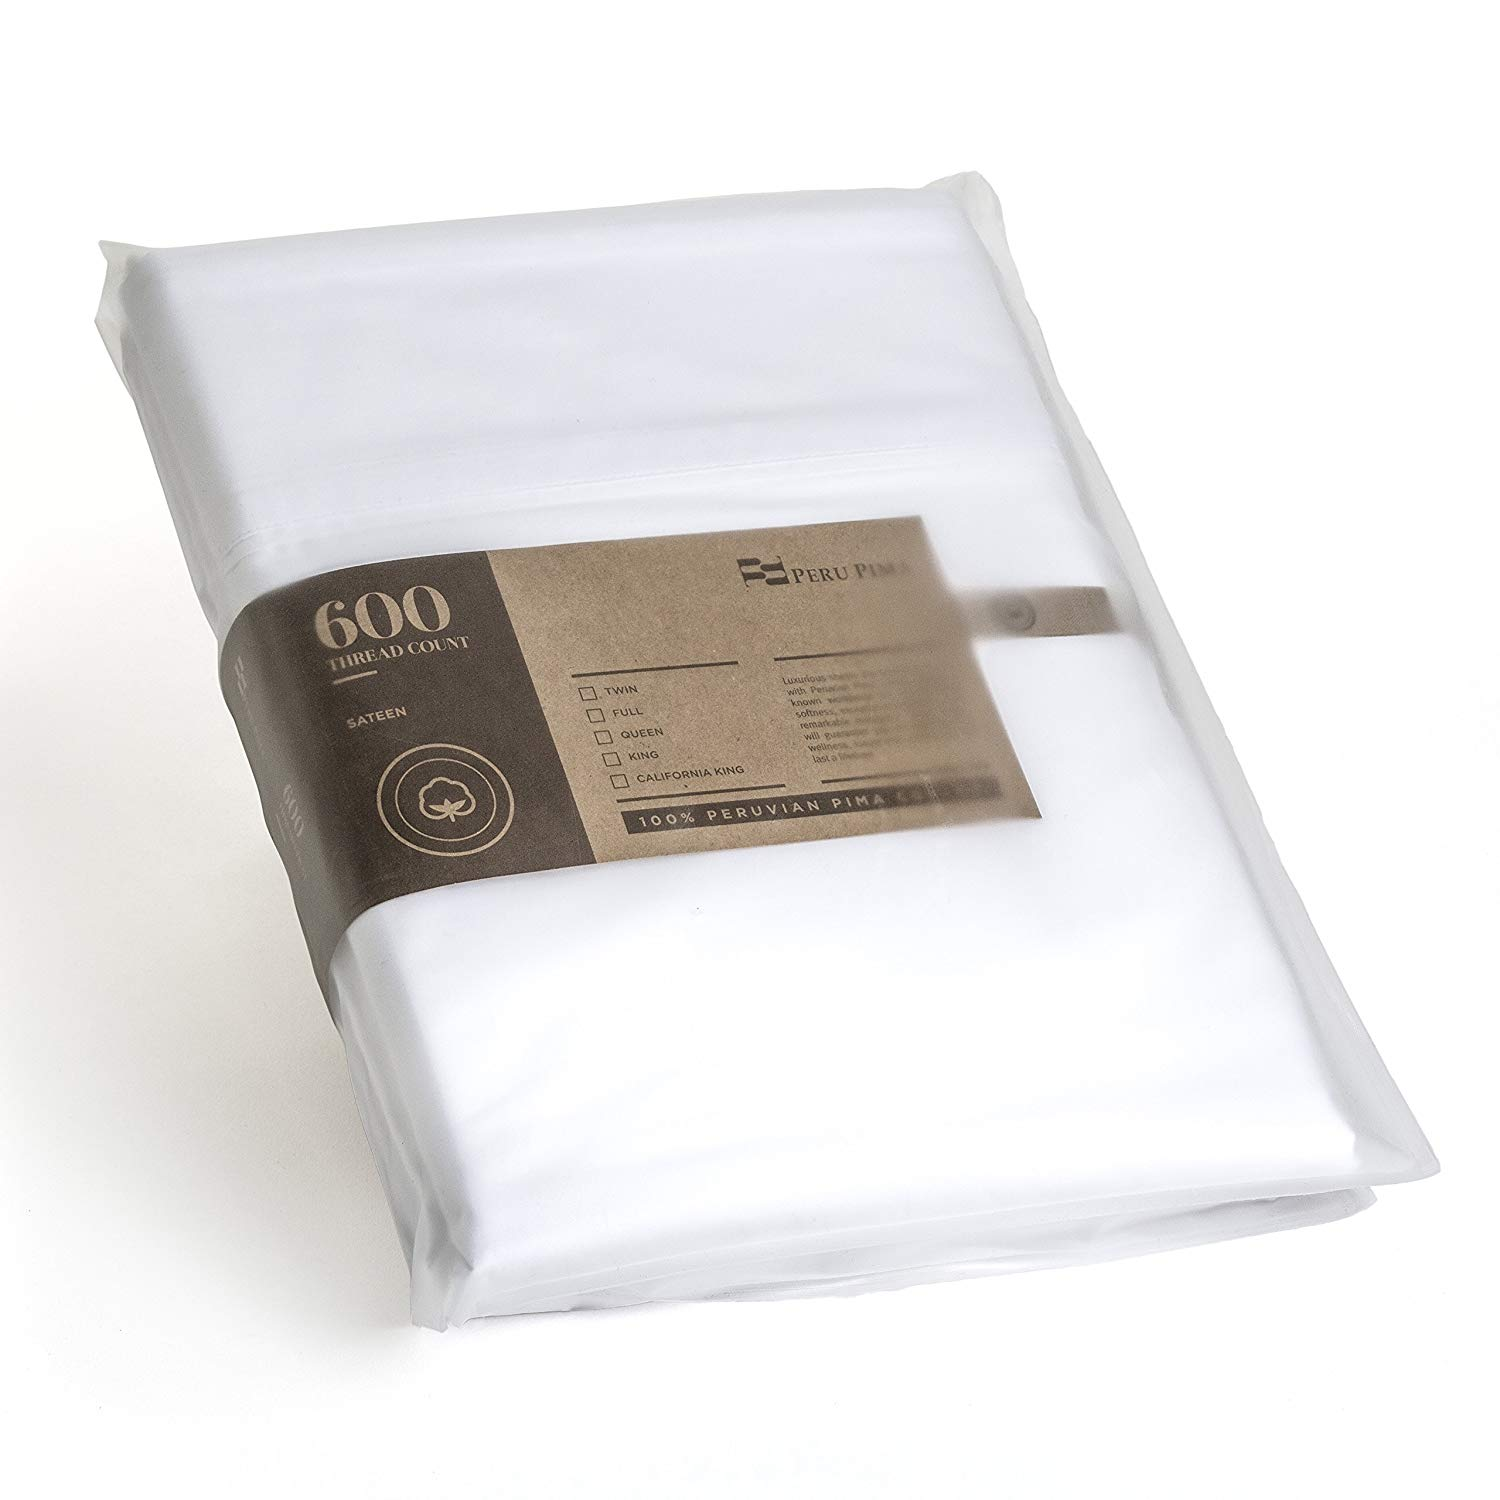 Image of Peruvian Pima sheets 600 thread count - Microfiber Sheets vs Cotton